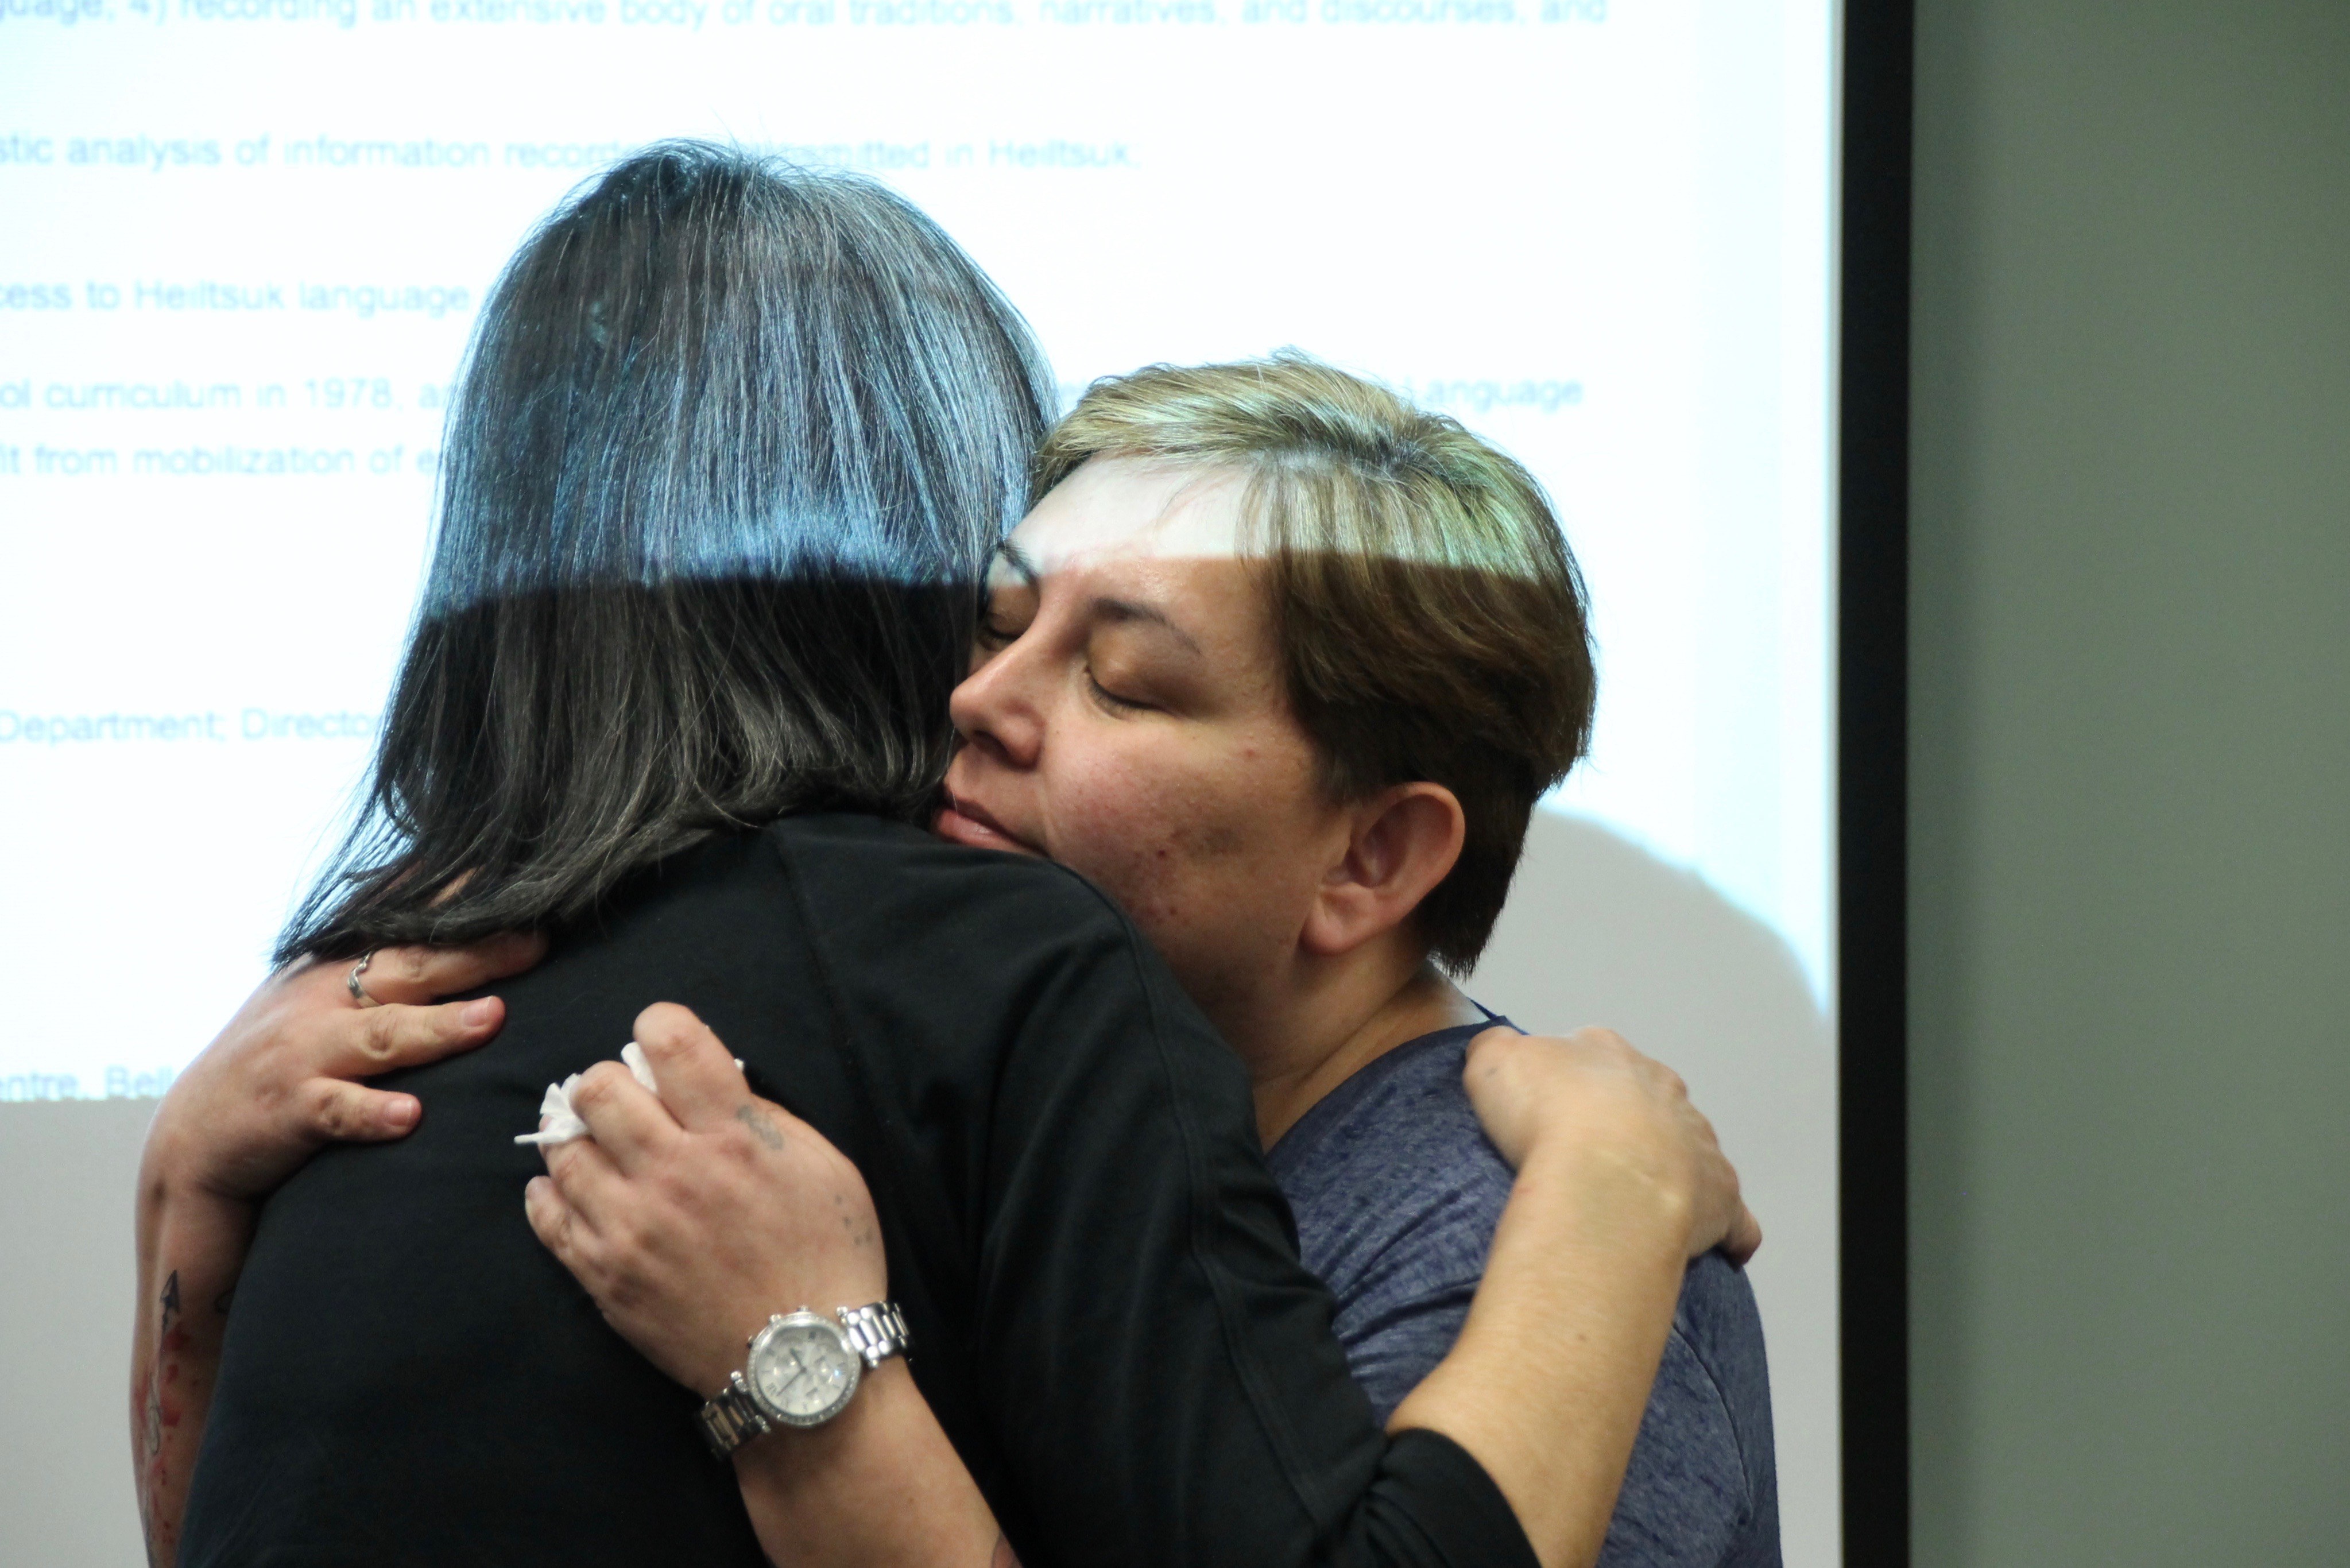 Instructor Elizabeth Wilson, right, embraces student Wanda Christianson at a Hailhzaqvla class in Vancouver. (Rehmatullah Sheikh/V.S. Wells)